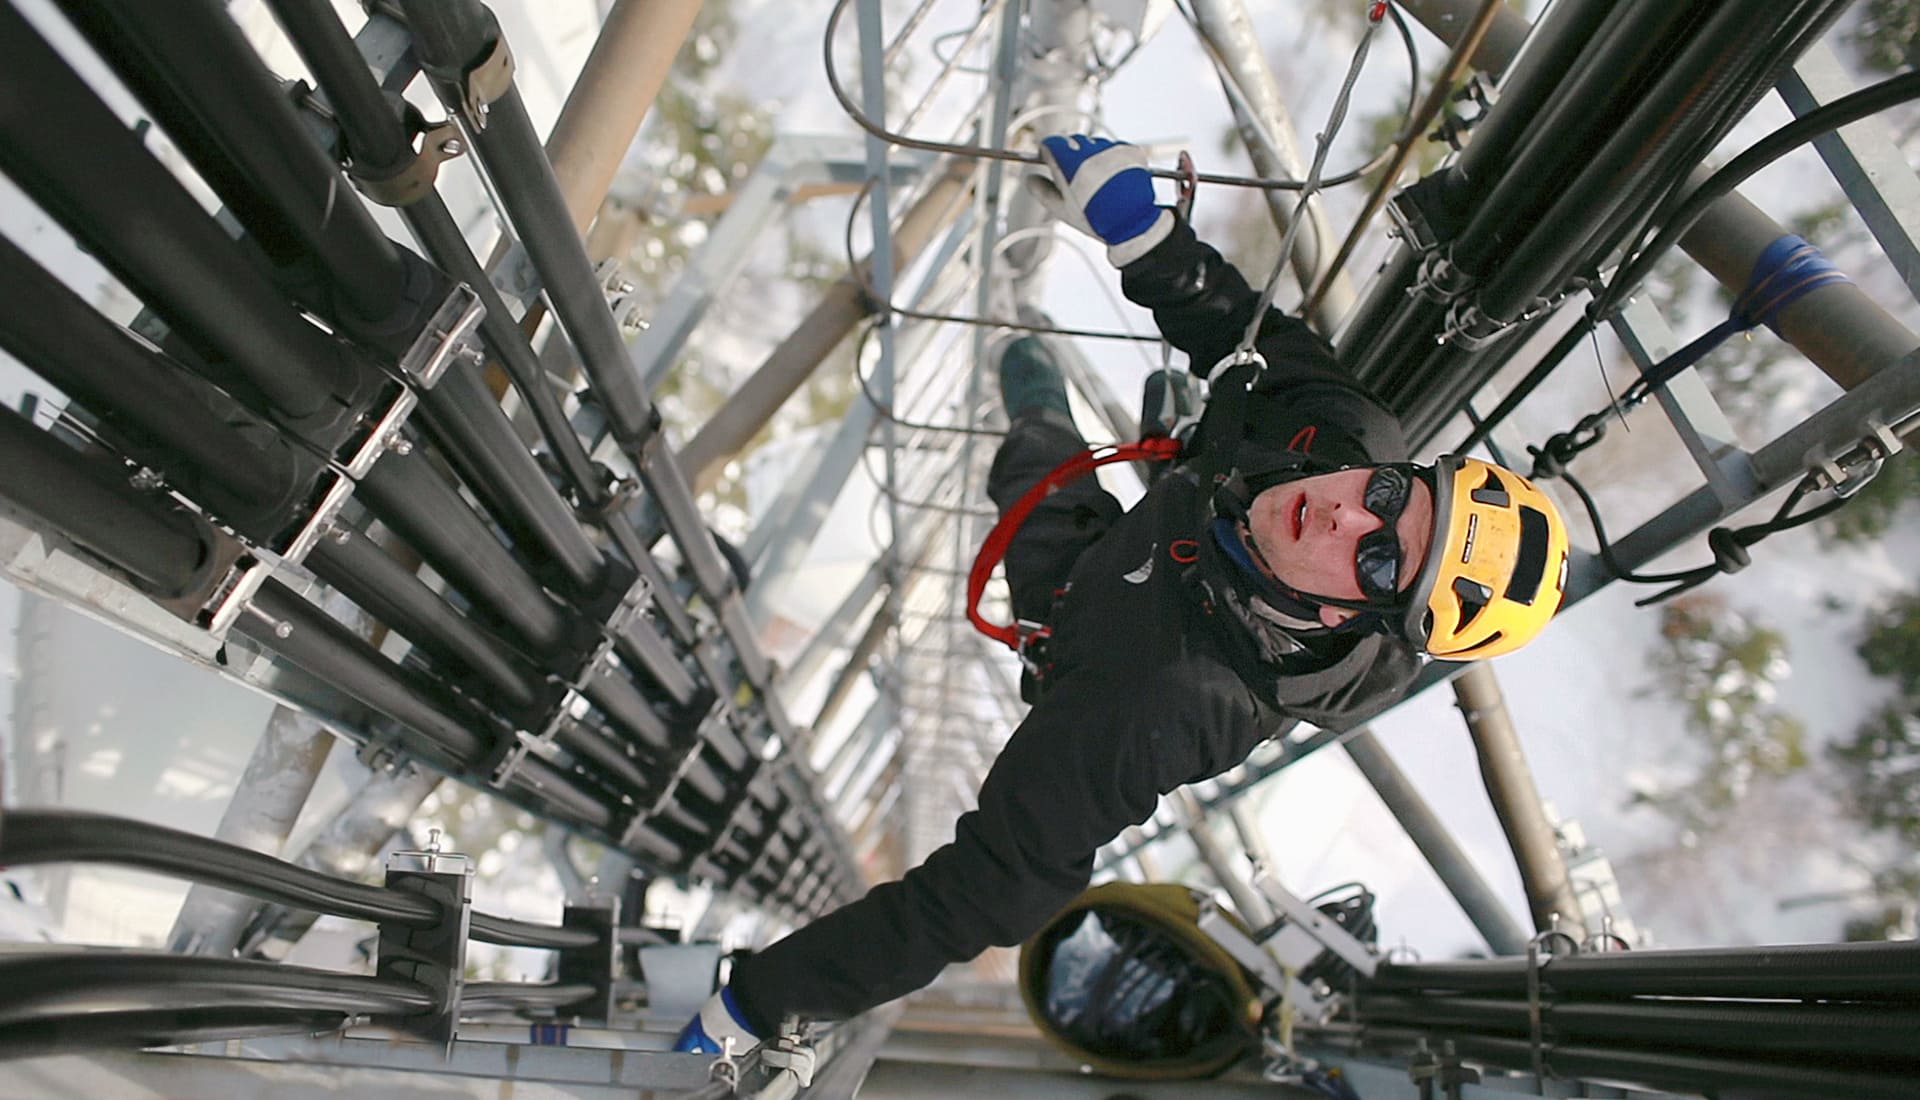 Climber- Health and Safety at work